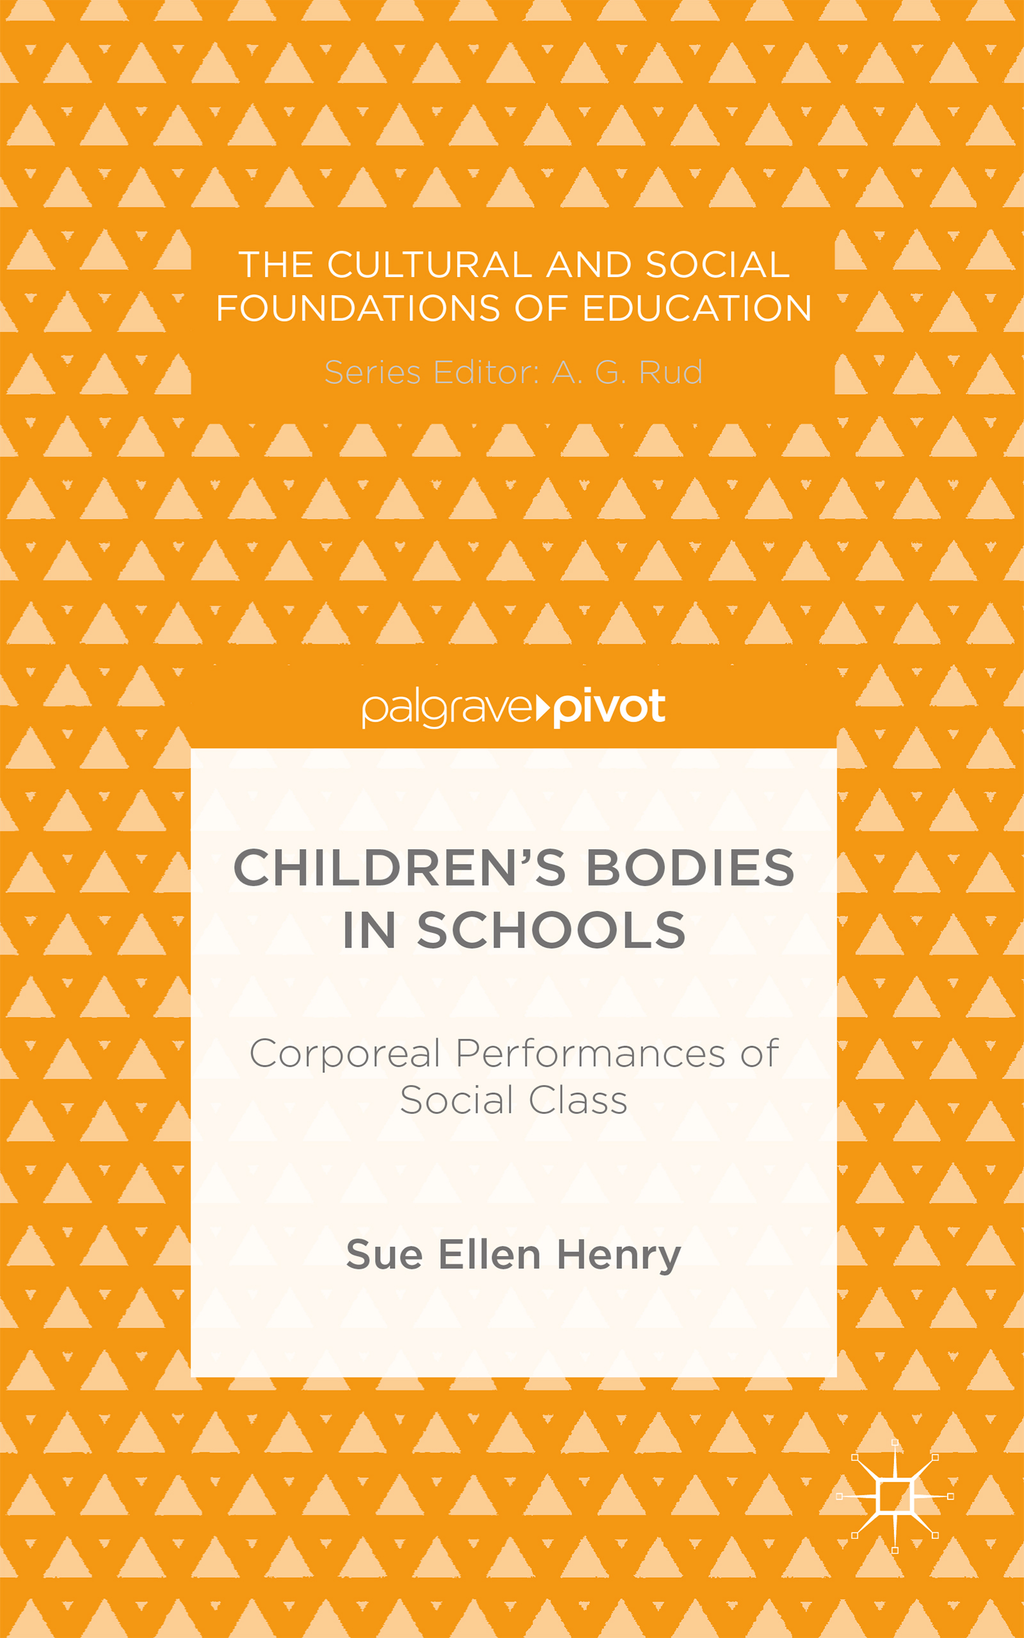 Children's Bodies in Schools Corporeal Performances of Social Class